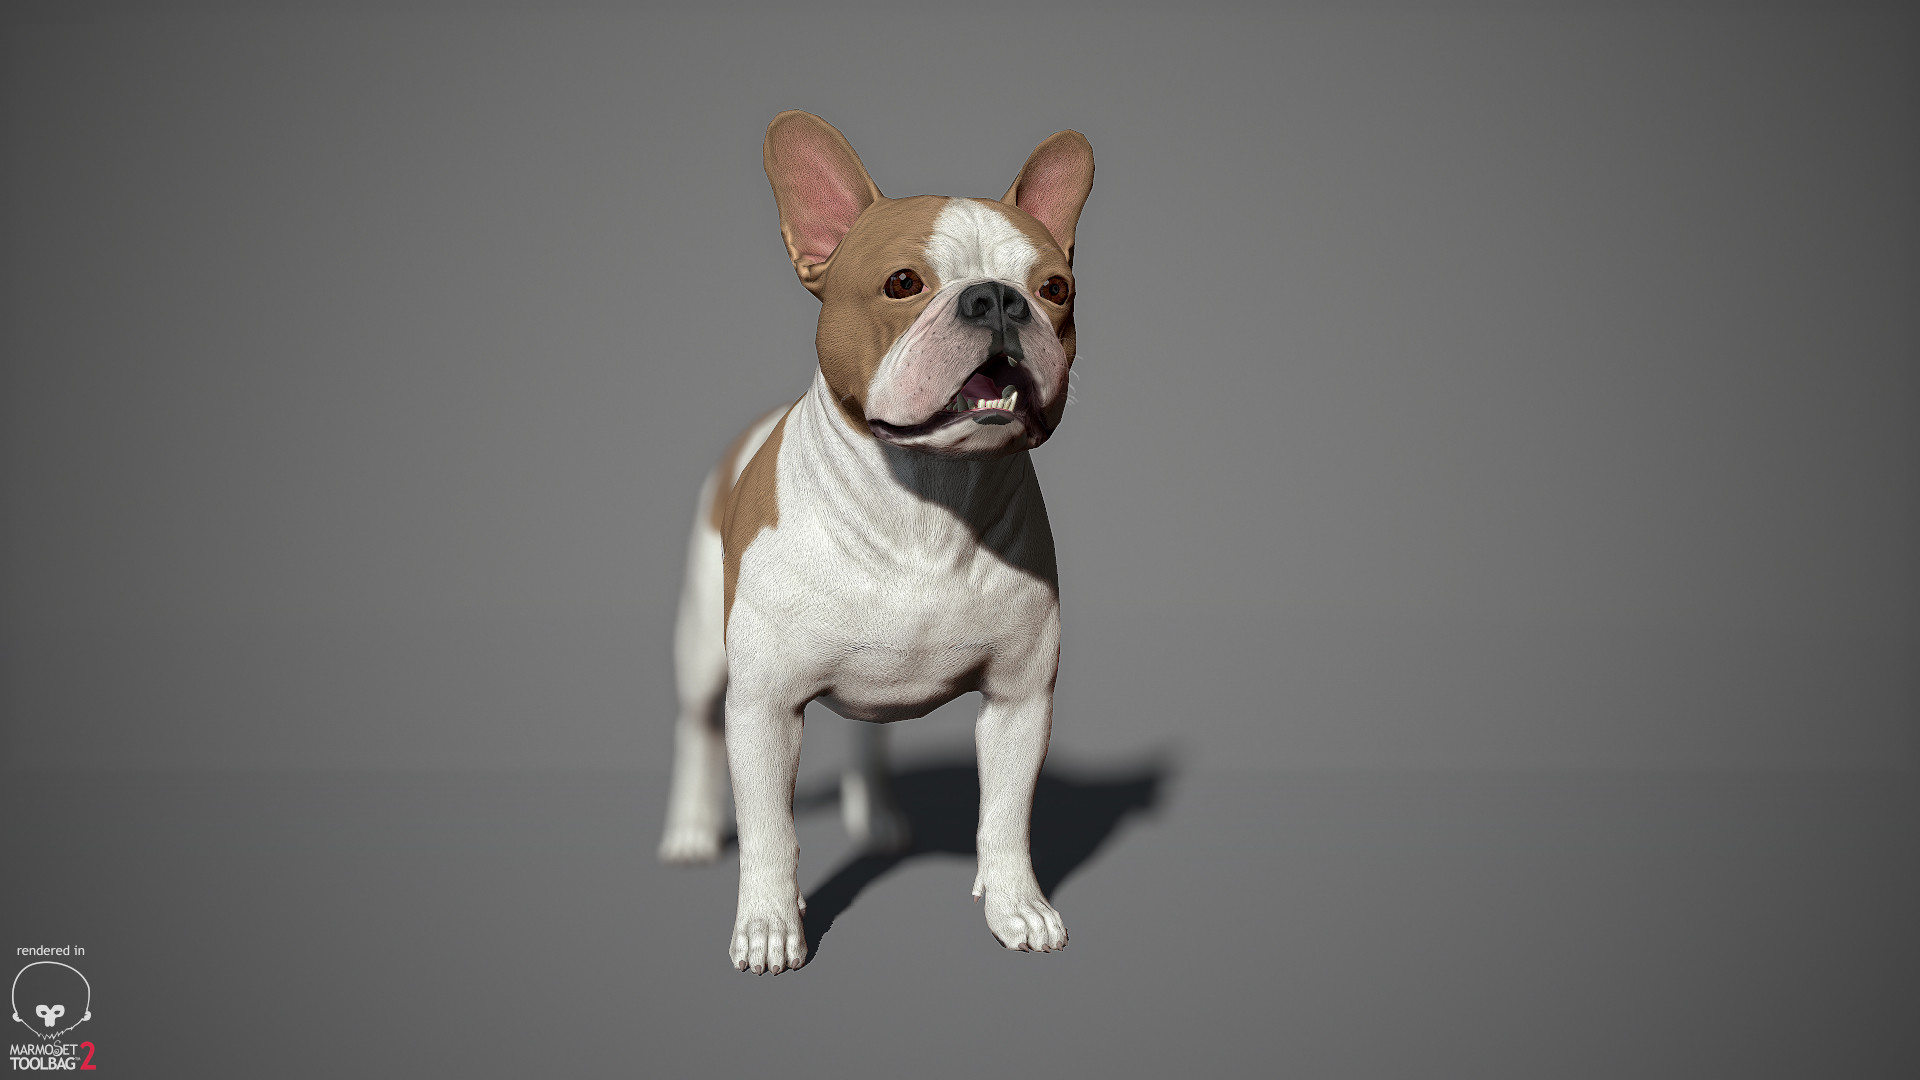 Alex lashko frenchbulldog by alexlashko marmoset 14